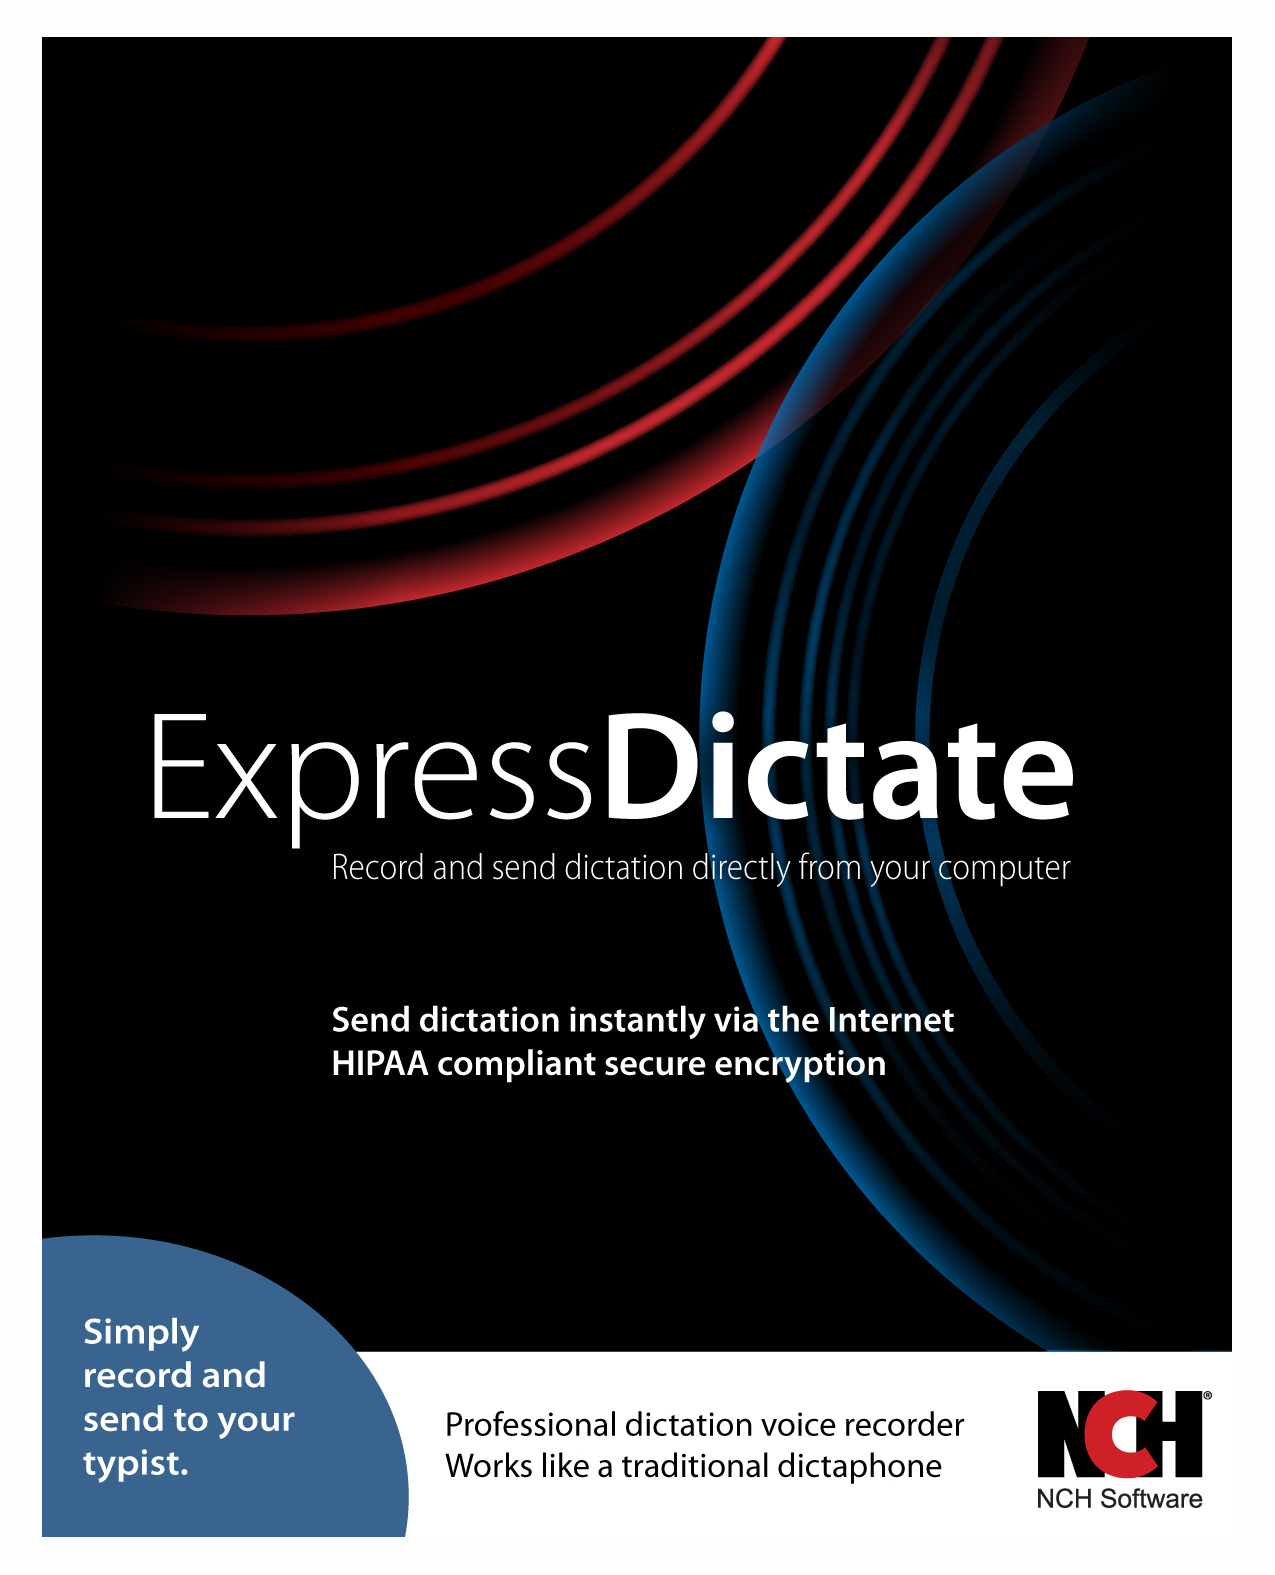 (Express Dictate Digital Dictation Software - Record and Send Dictation to Typist)